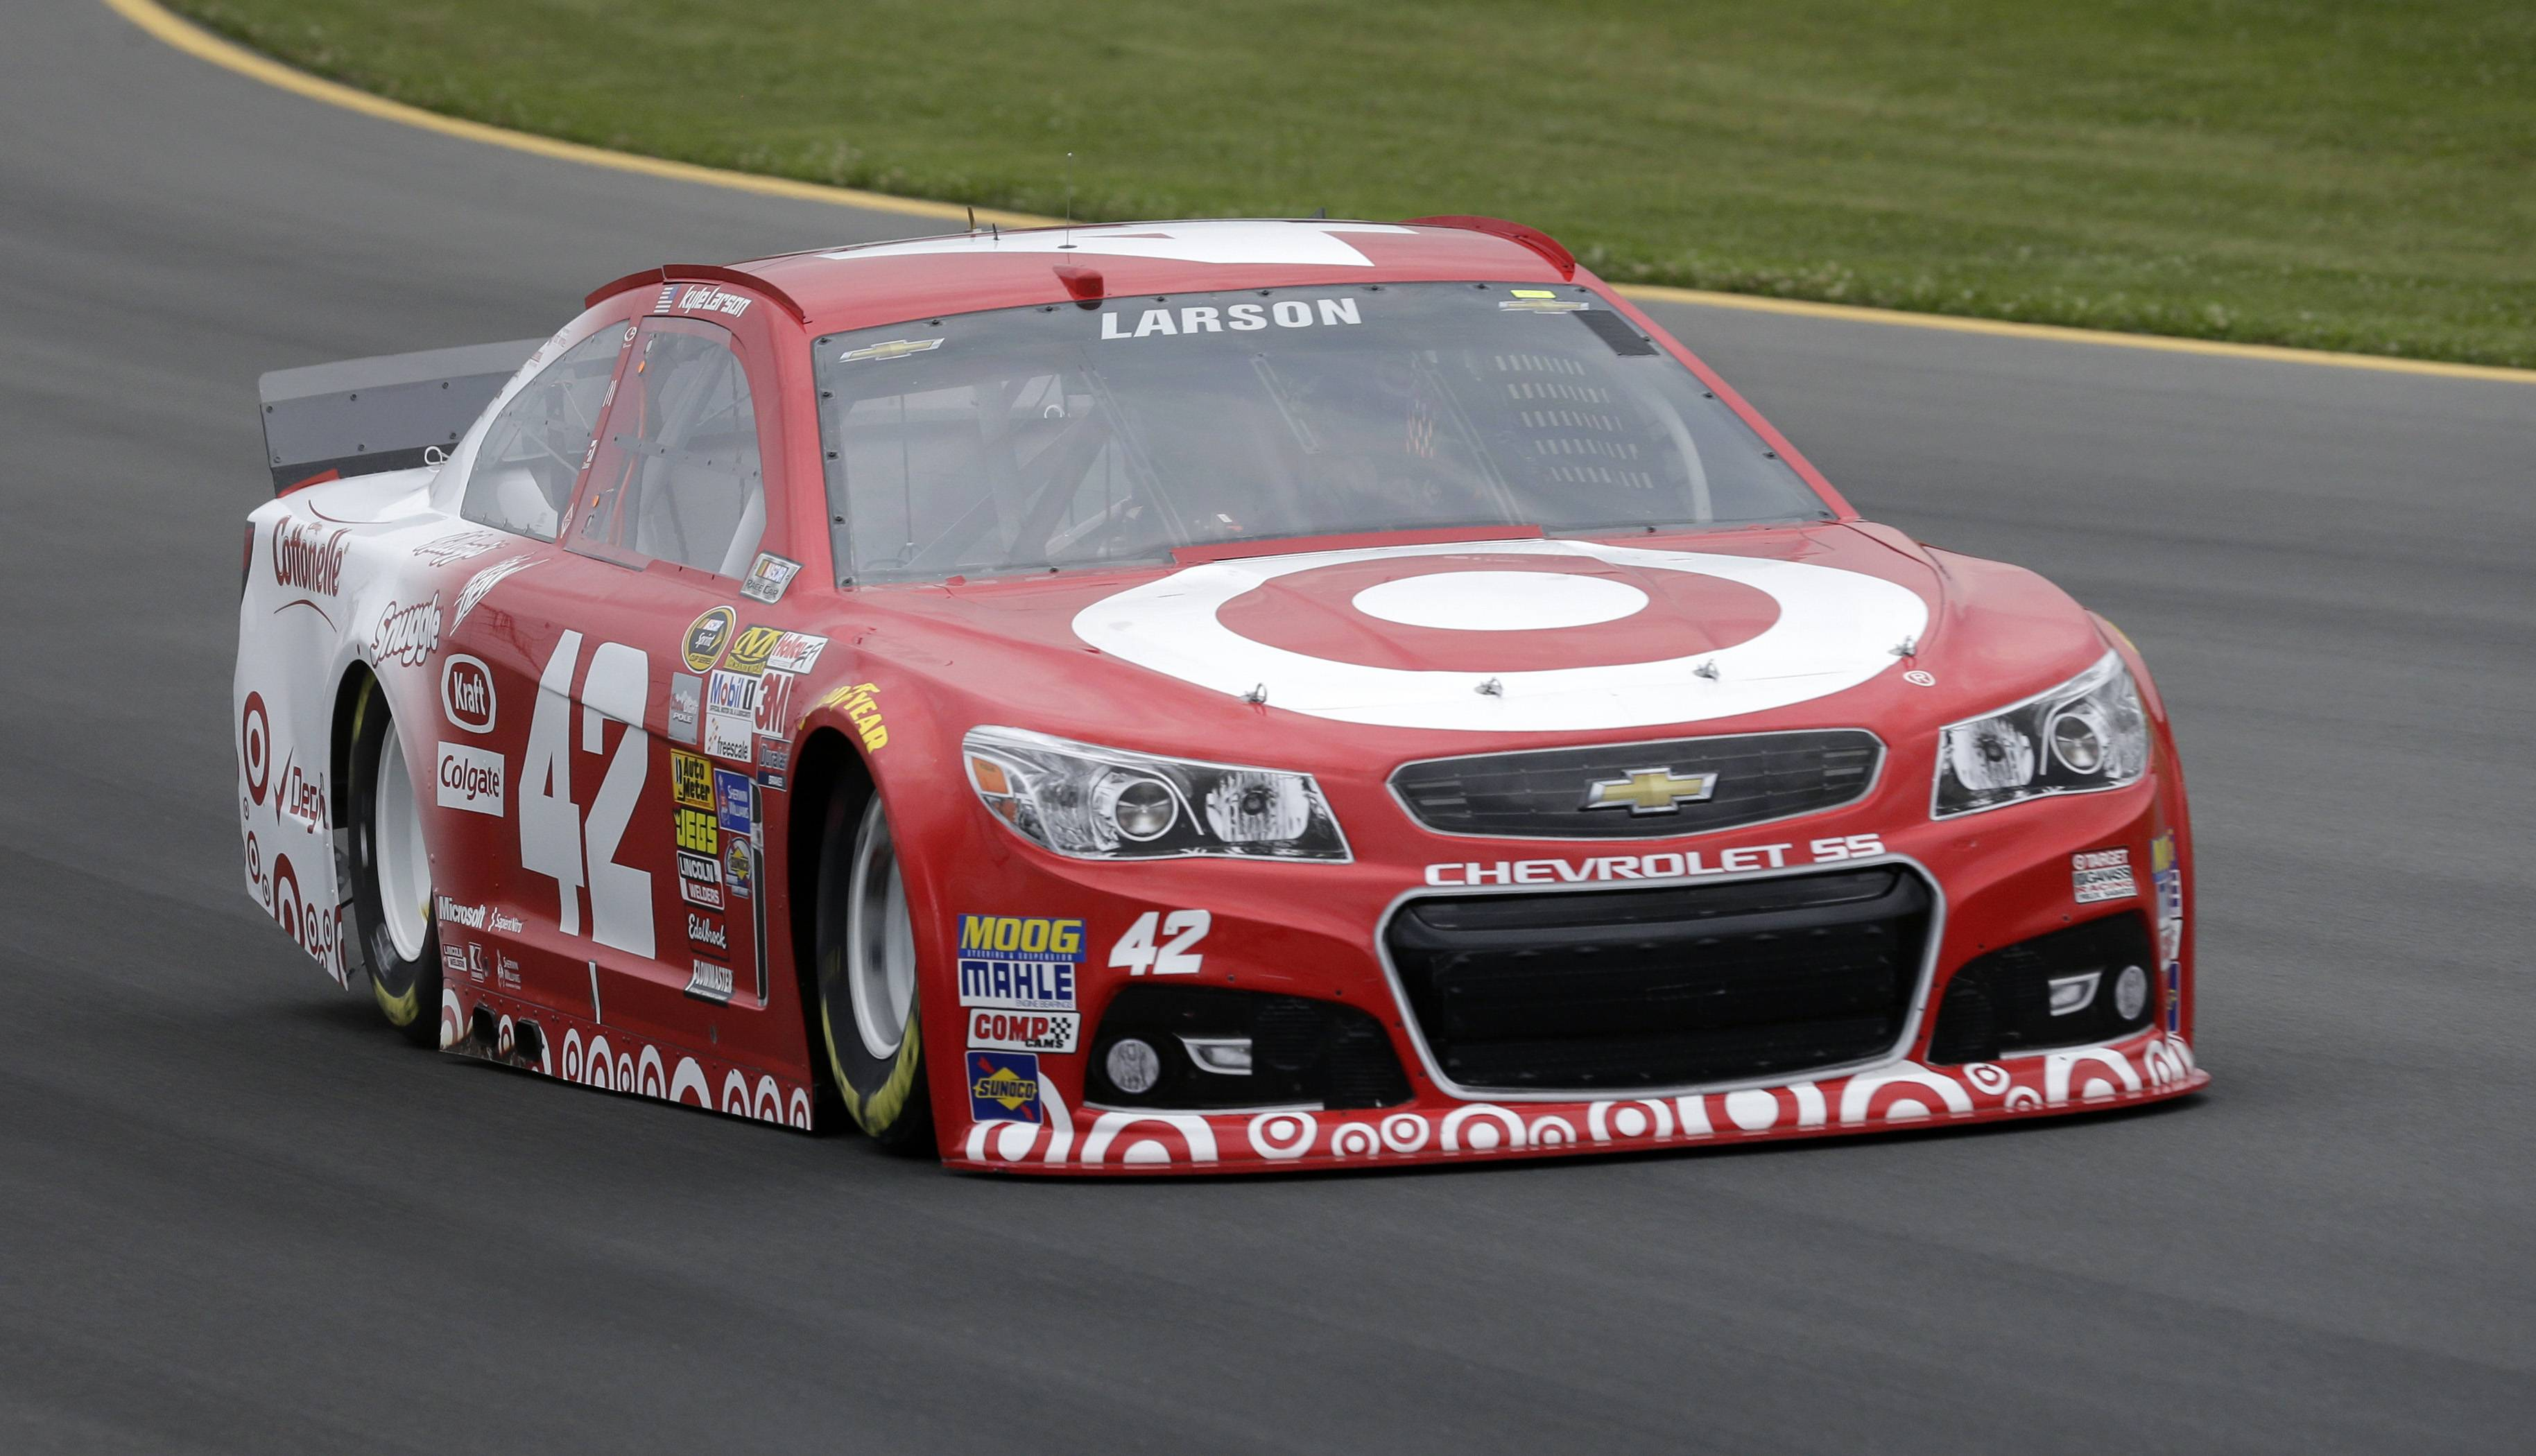 Kyle Larson drives during qualifying for Sunday's NASCAR Sprint Cup Series auto race at Pocono Raceway, Friday, Aug. 1, 2014, Long Pond, Pa. Larson qualified on the pole.